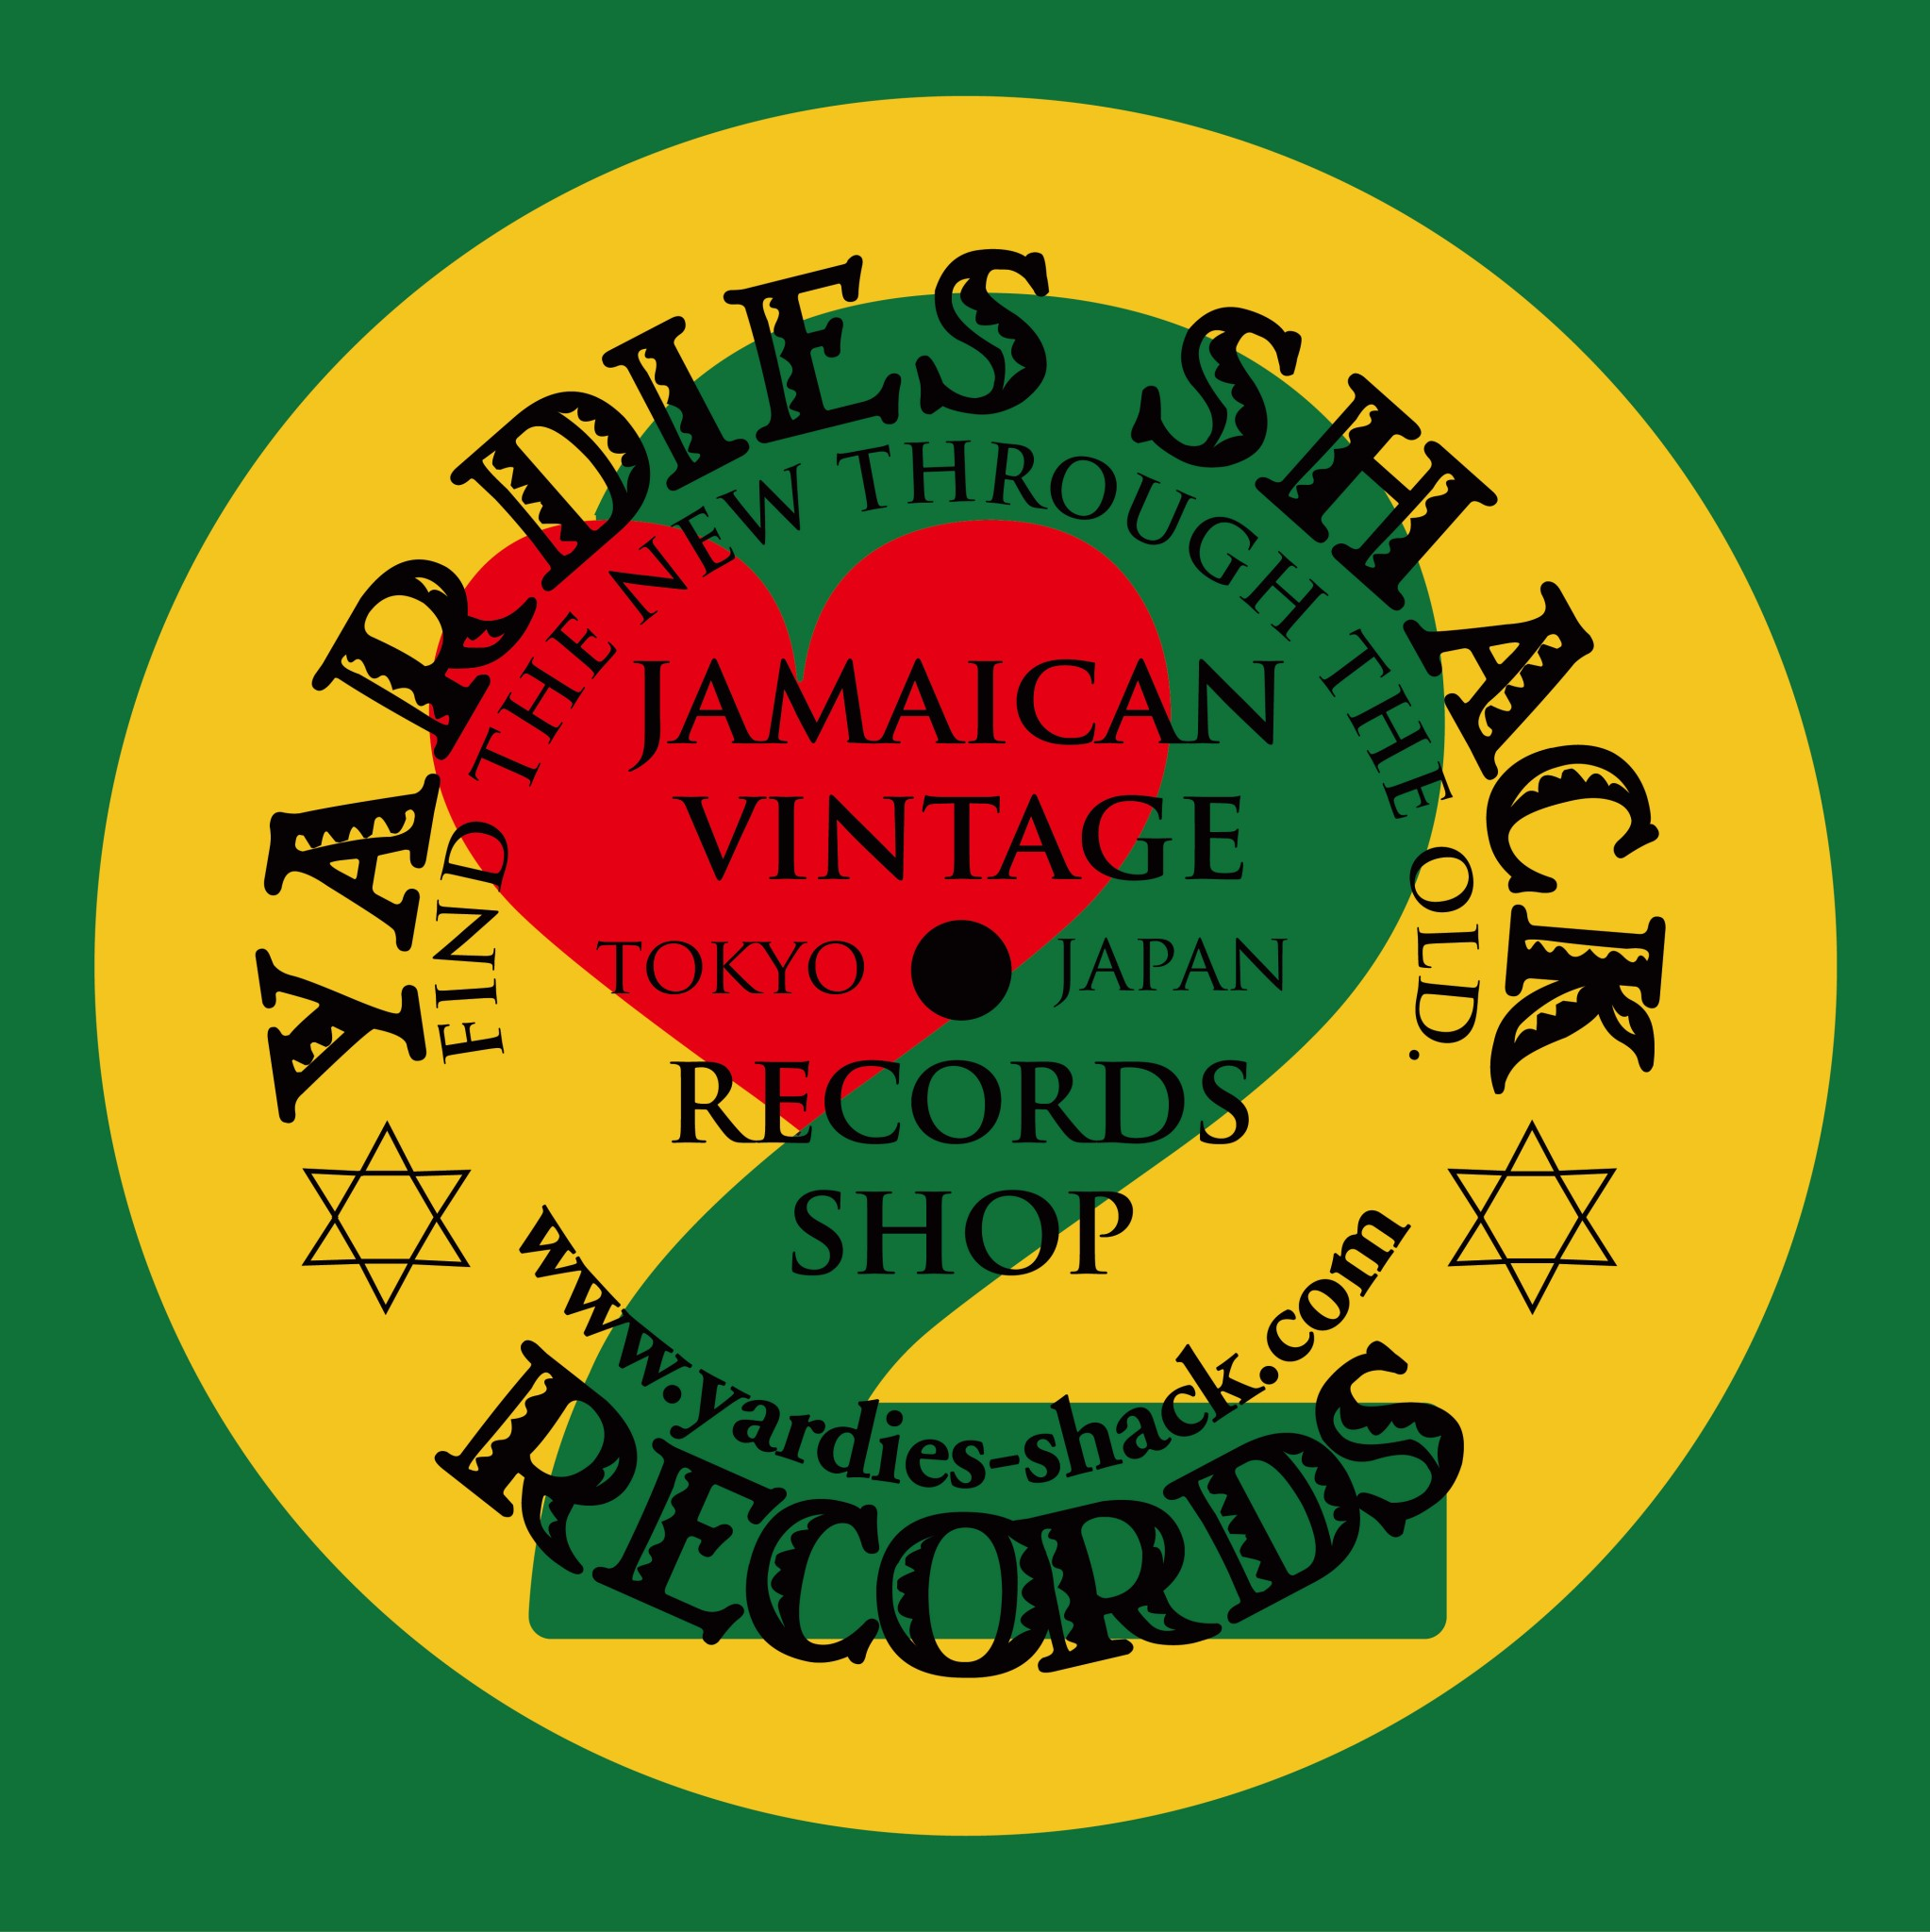 YARDIES SHACK RECORDS POP UP STORE at 2